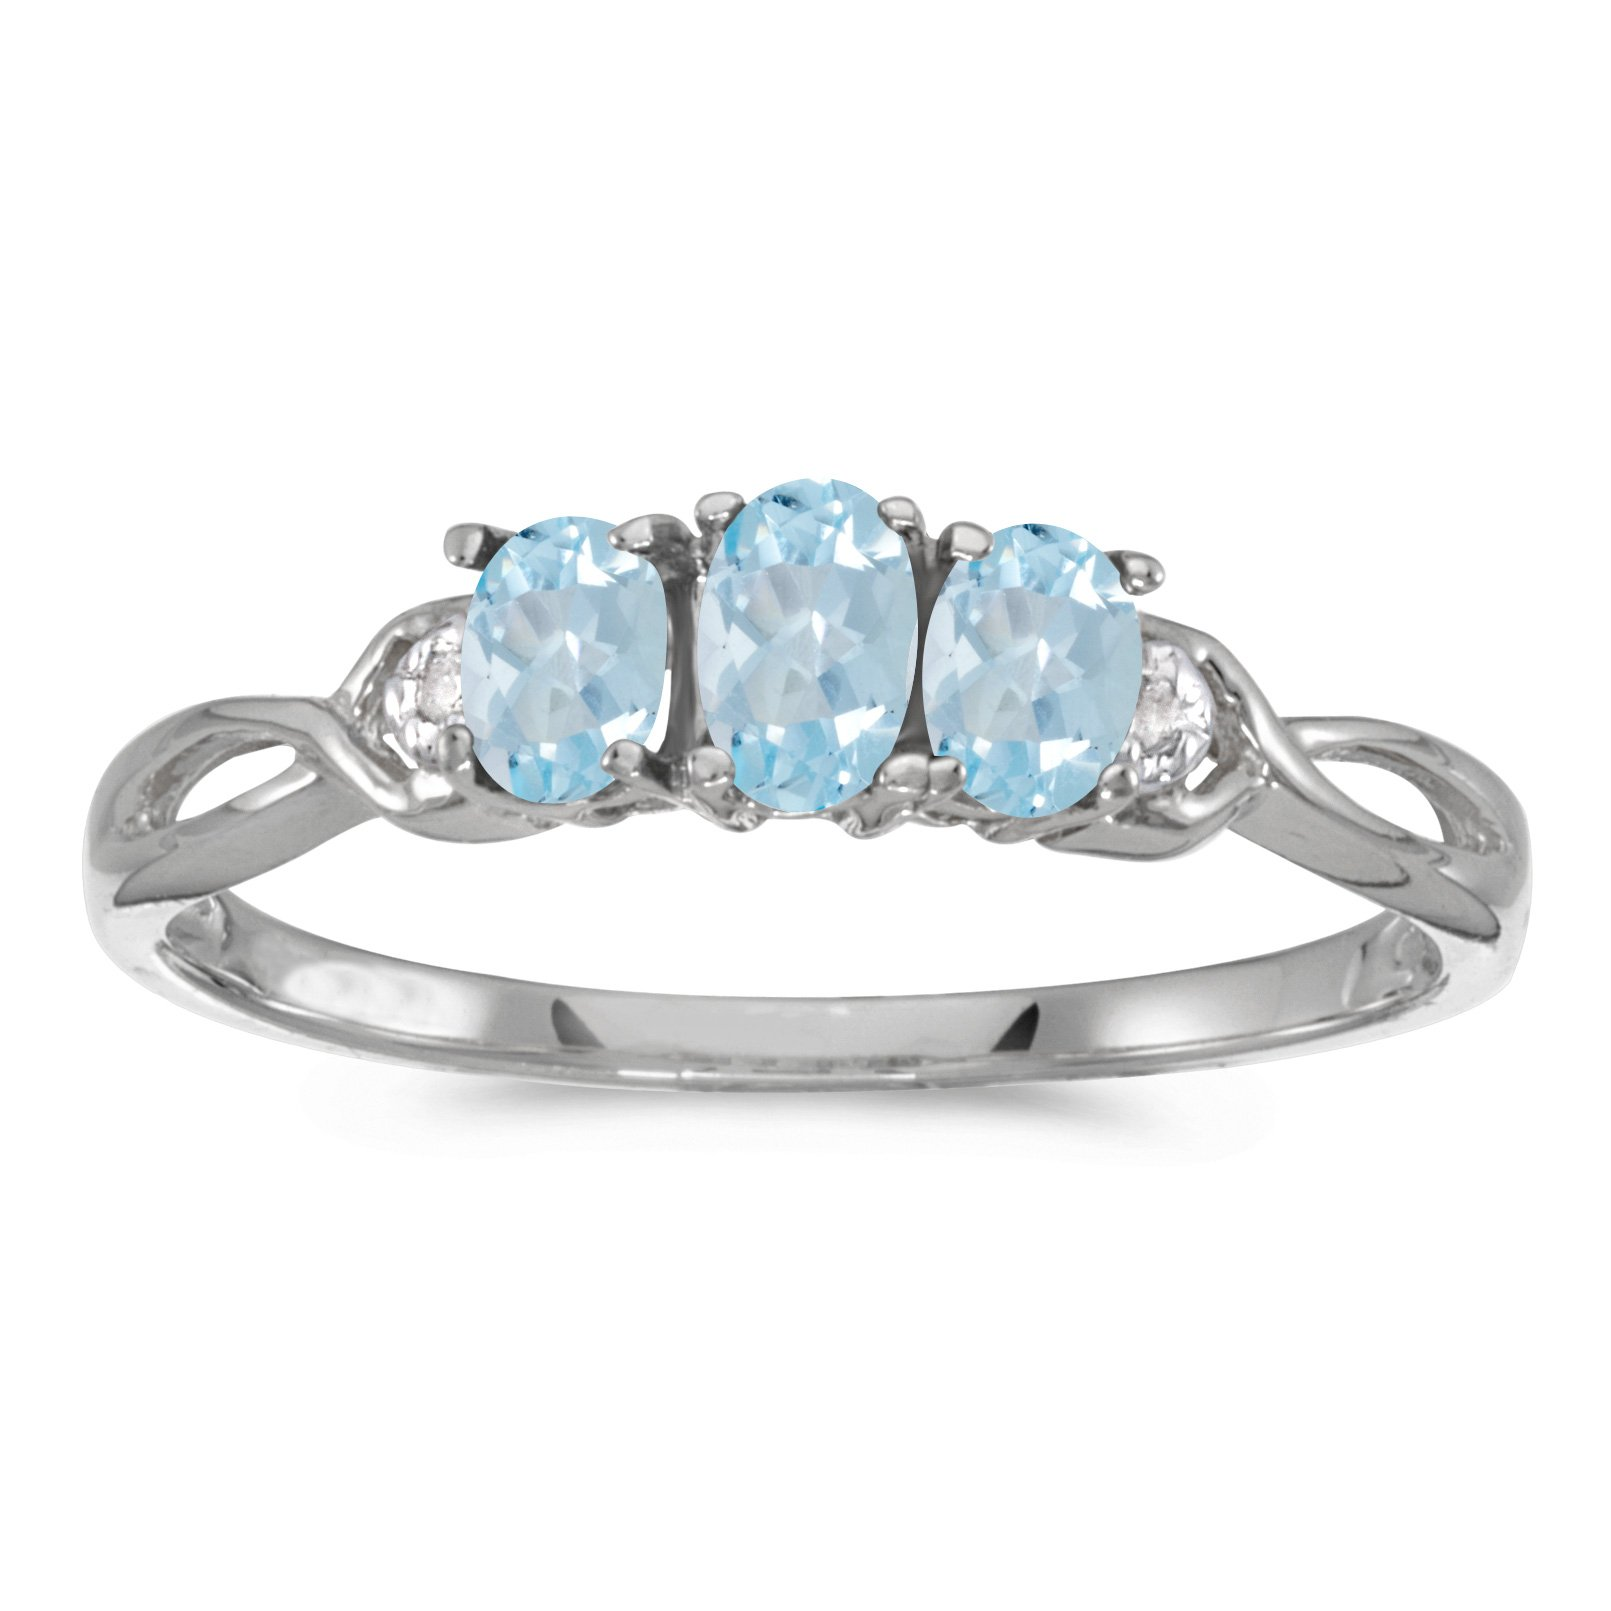 Jewels By Lux 14k White Gold Genuine Birthstone Solitaire Oval Aquamarine And Diamond Three Stone Wedding Engagement Ring - Size 6.5 (2/5 Cttw.)